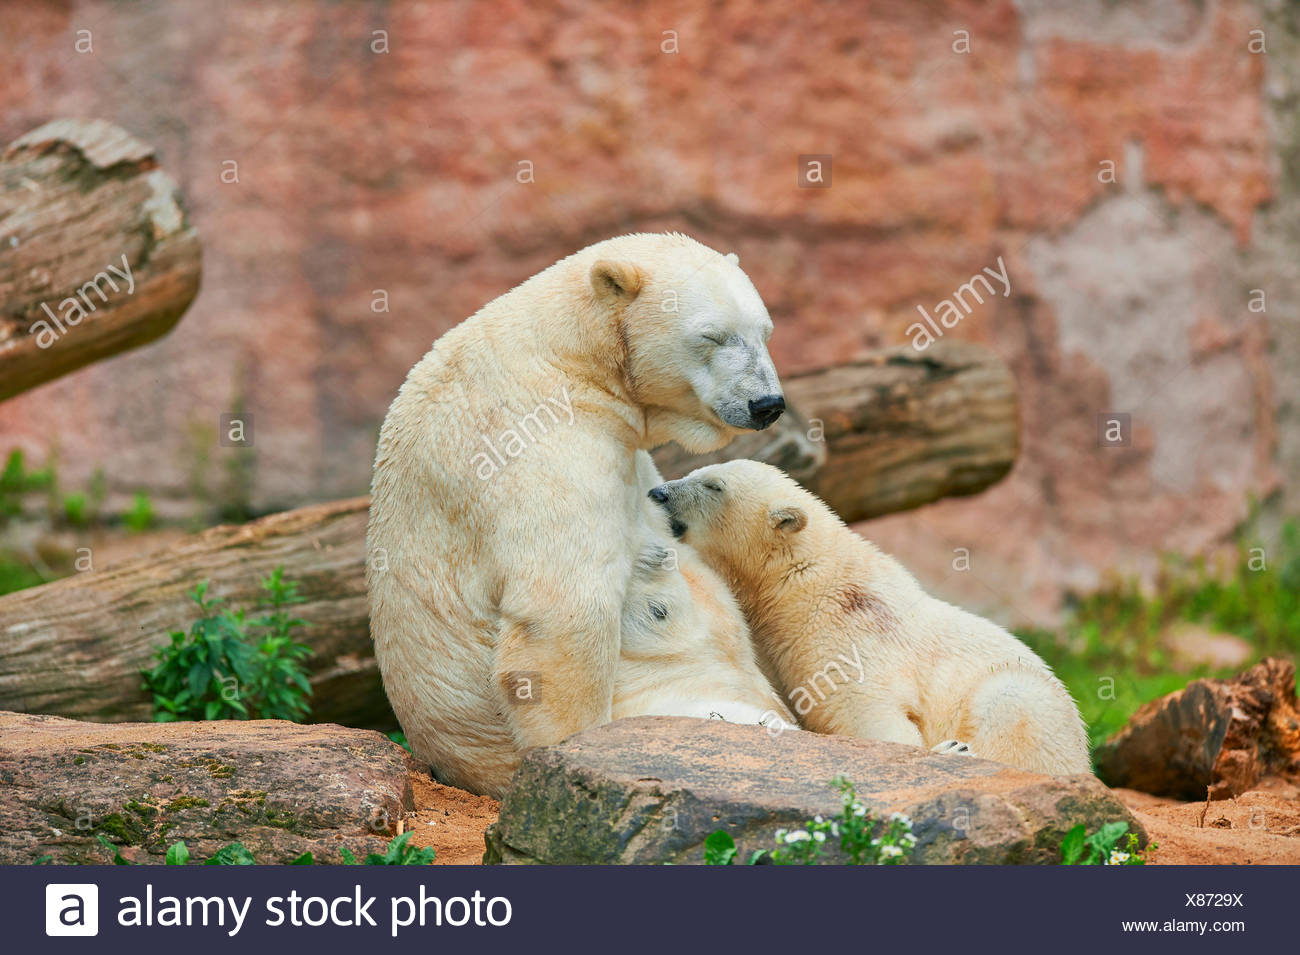 polar bear (Ursus maritimus), polar bear cub is suckled by its mother - Stock Image